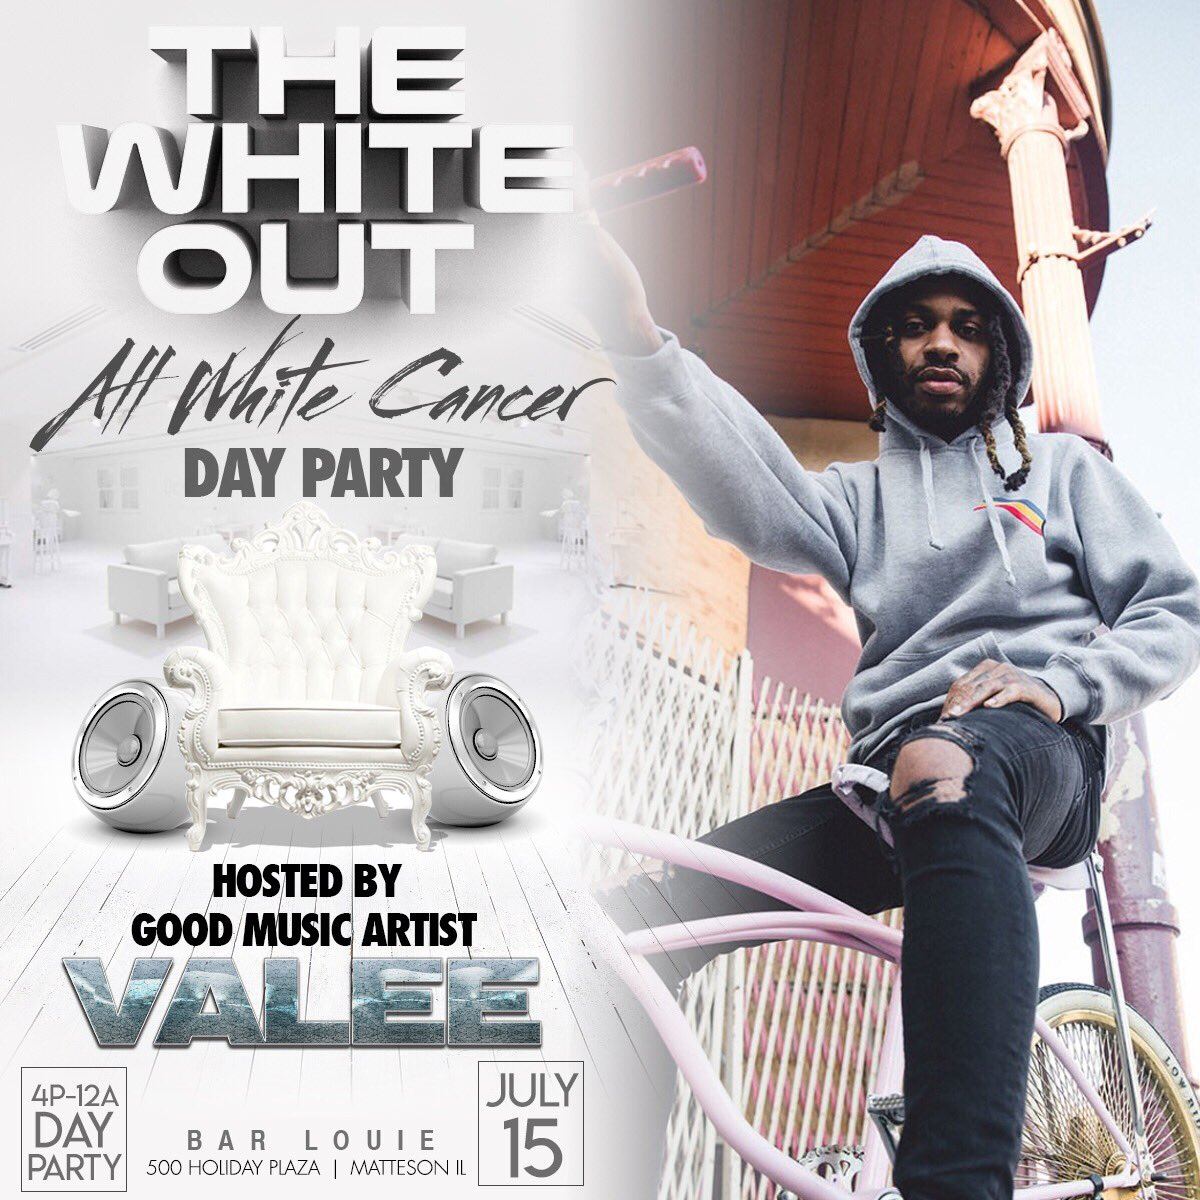 Hostin The White Out day party Sunday July 15th at Bar Louie in Matteson. Come thru 4p-12a